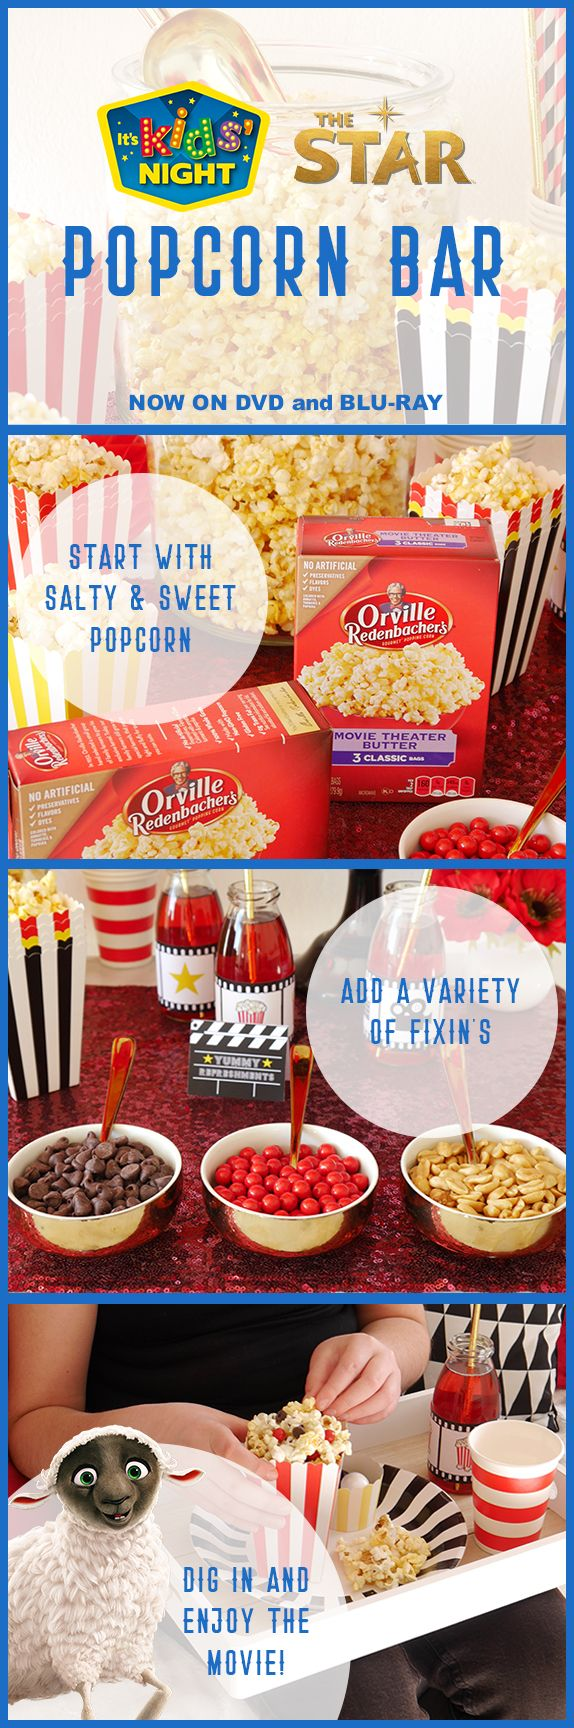 Pick up everything you need for this DIY Popcorn Bar at Walmart. #TheStarMovie